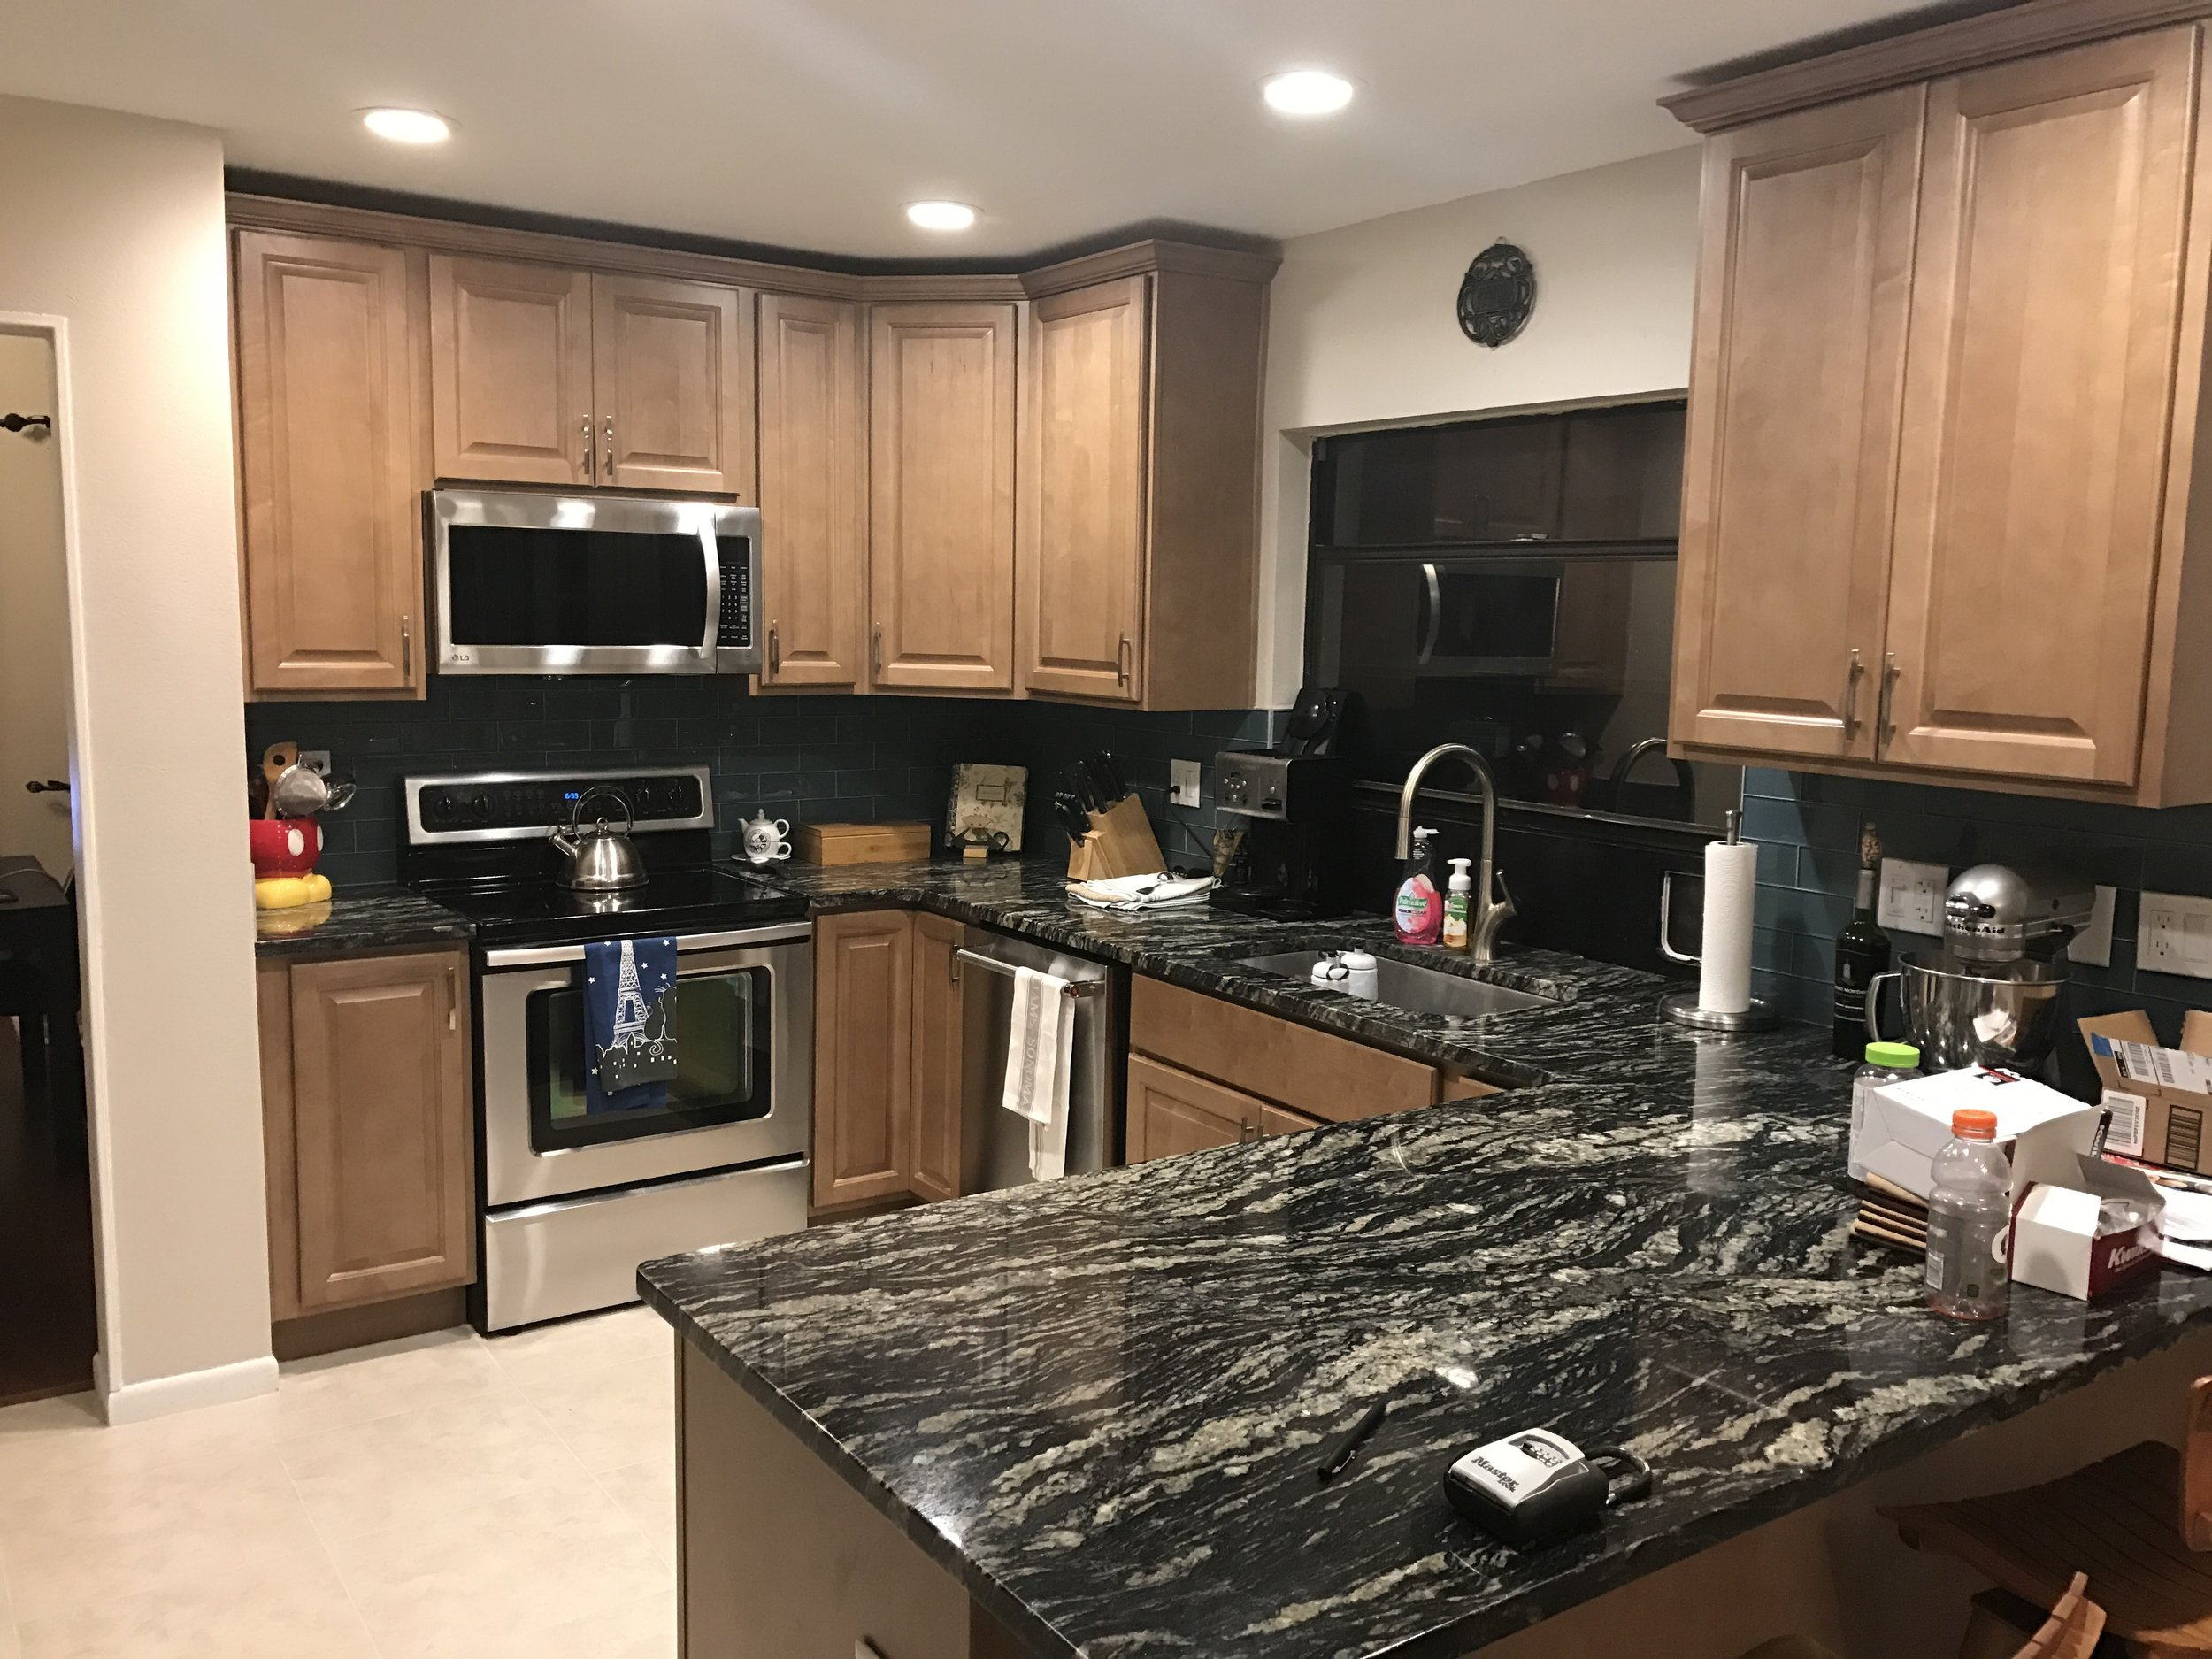 After: Maintained original layout, updated with new cabinets & countertops